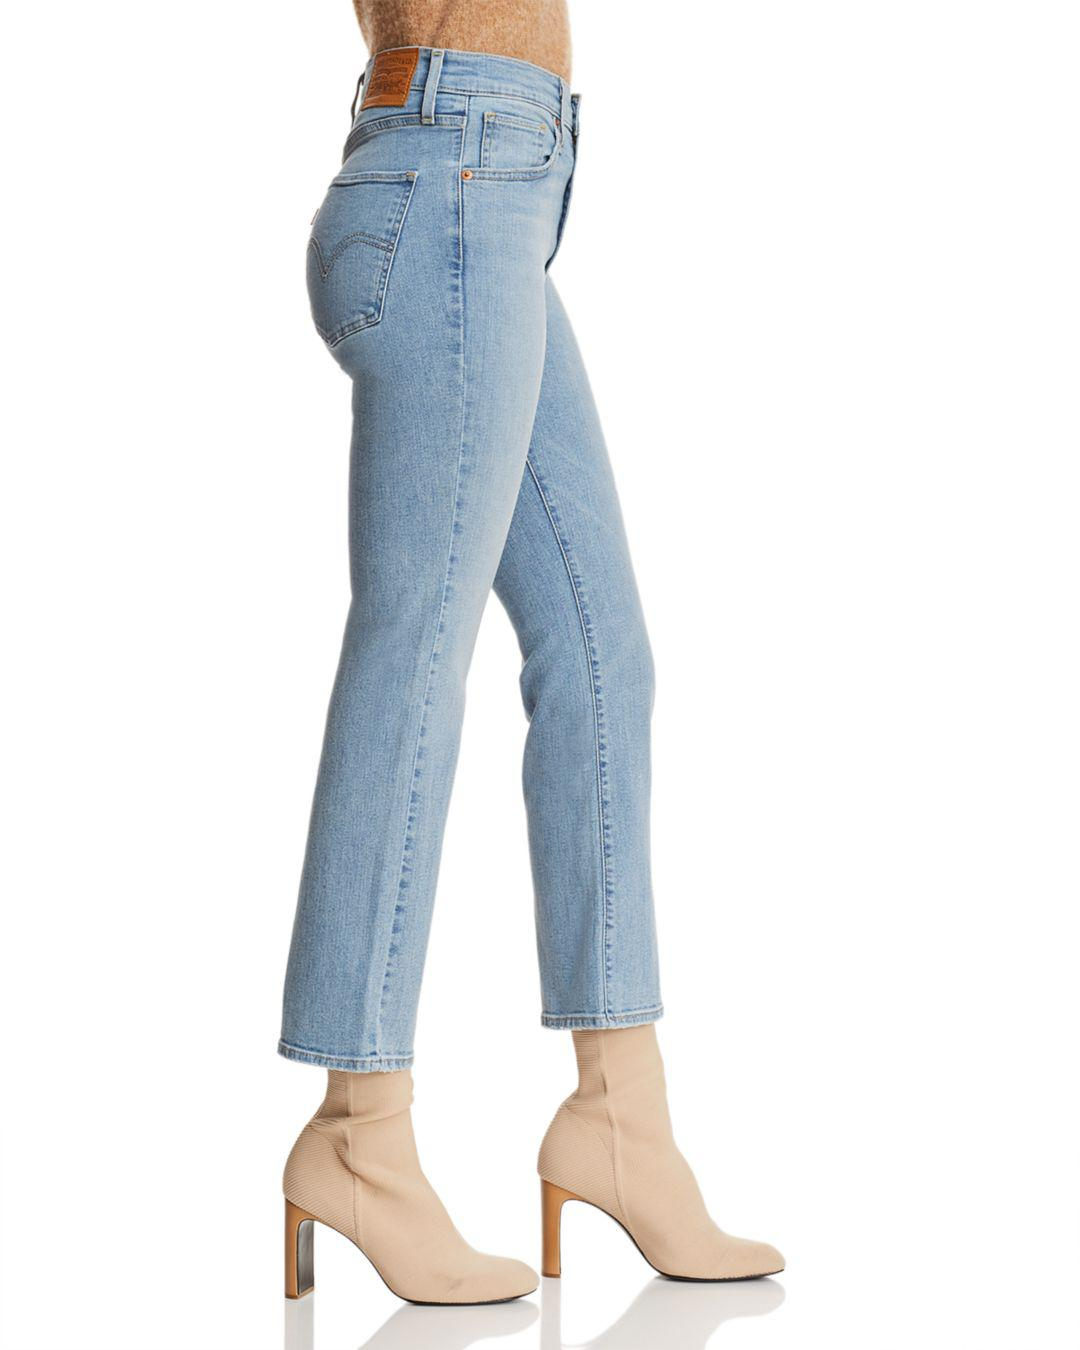 Levi's In Game Blue Lyst The Crop To Jeans High Mile Flare Late 1SdqT